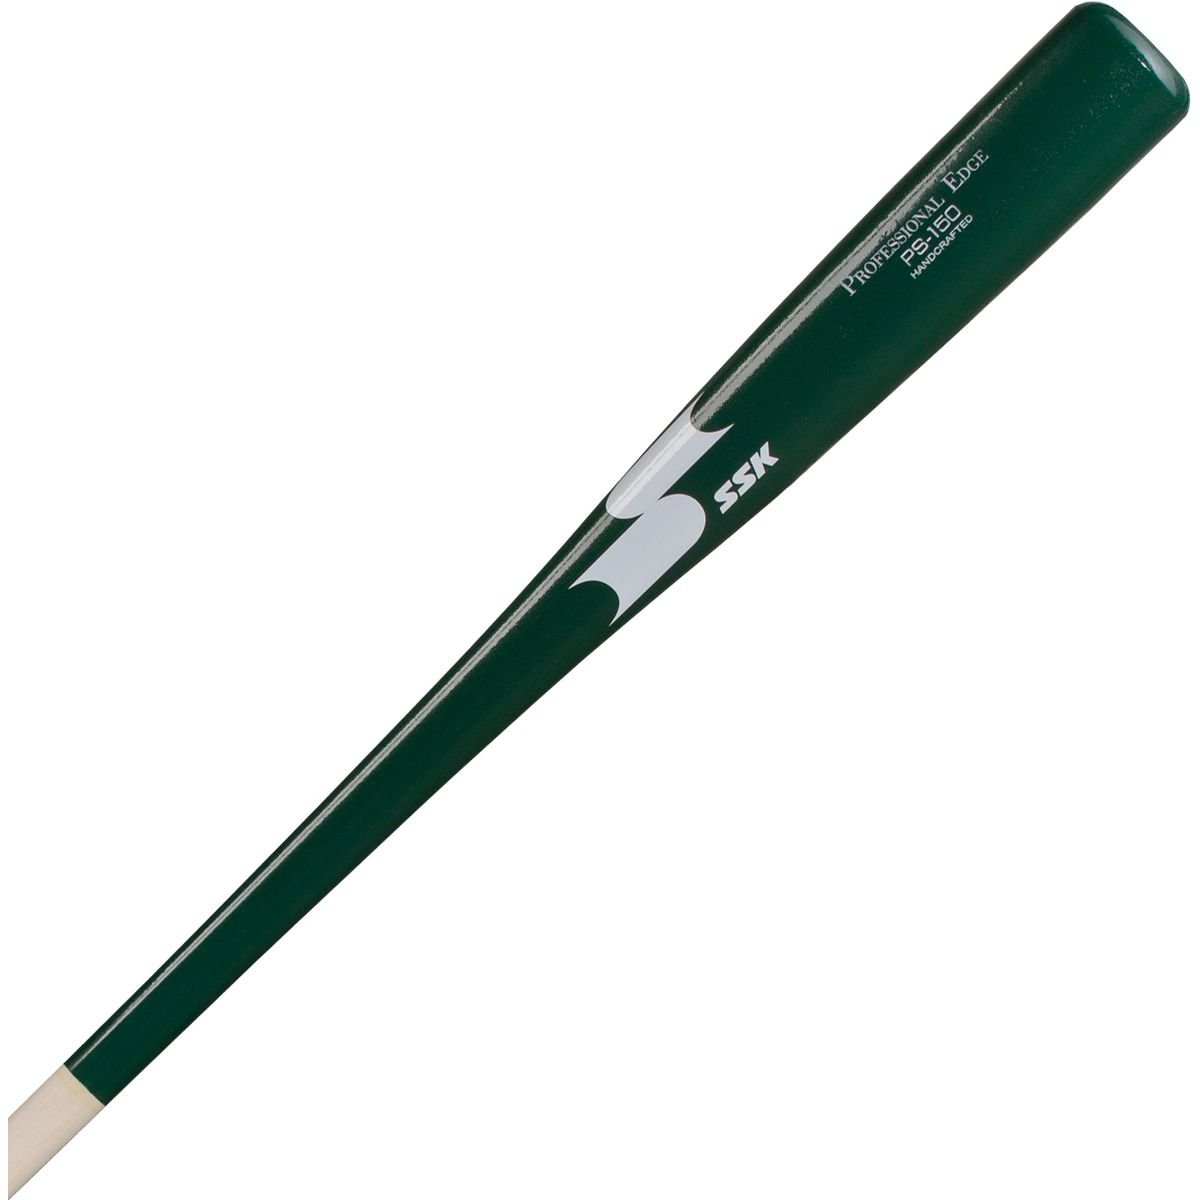 SSK 35'' PS150 Wood Fungo Bat by SSK